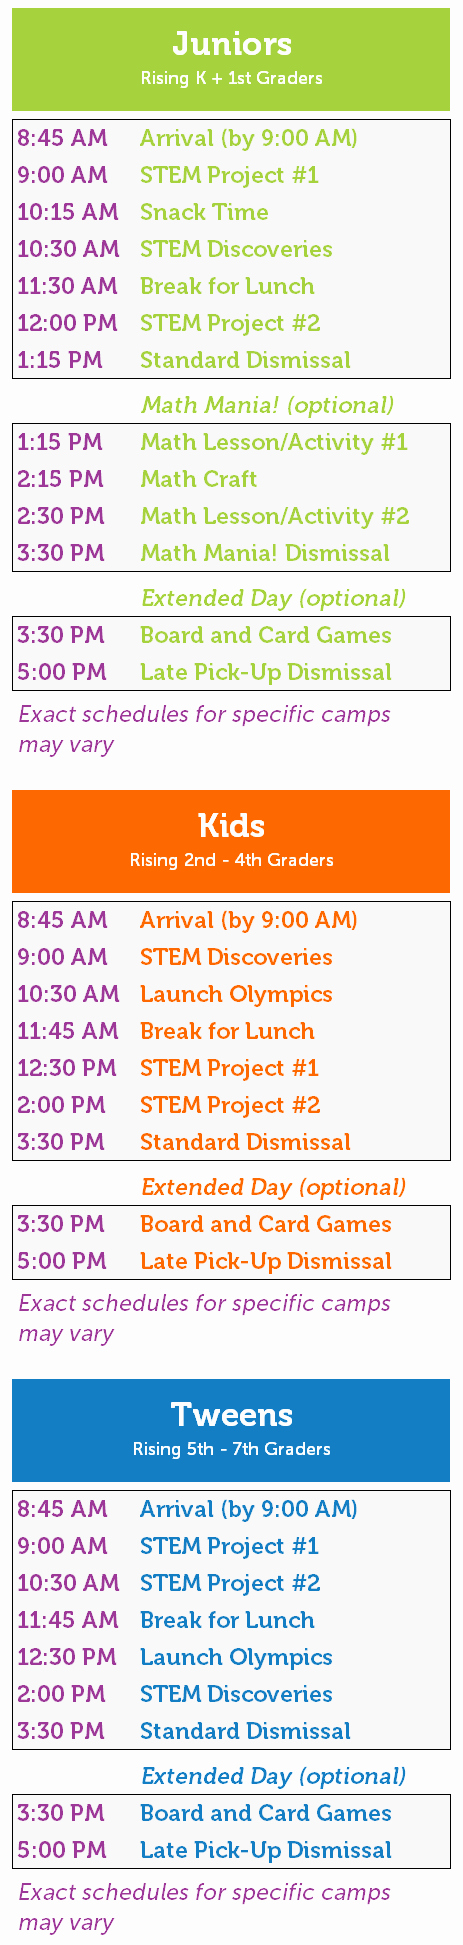 Summer Camp Daily Schedule Sample Inspirational Stem Summer Camps for Kids From Kindergarten to 7th Grade Launch